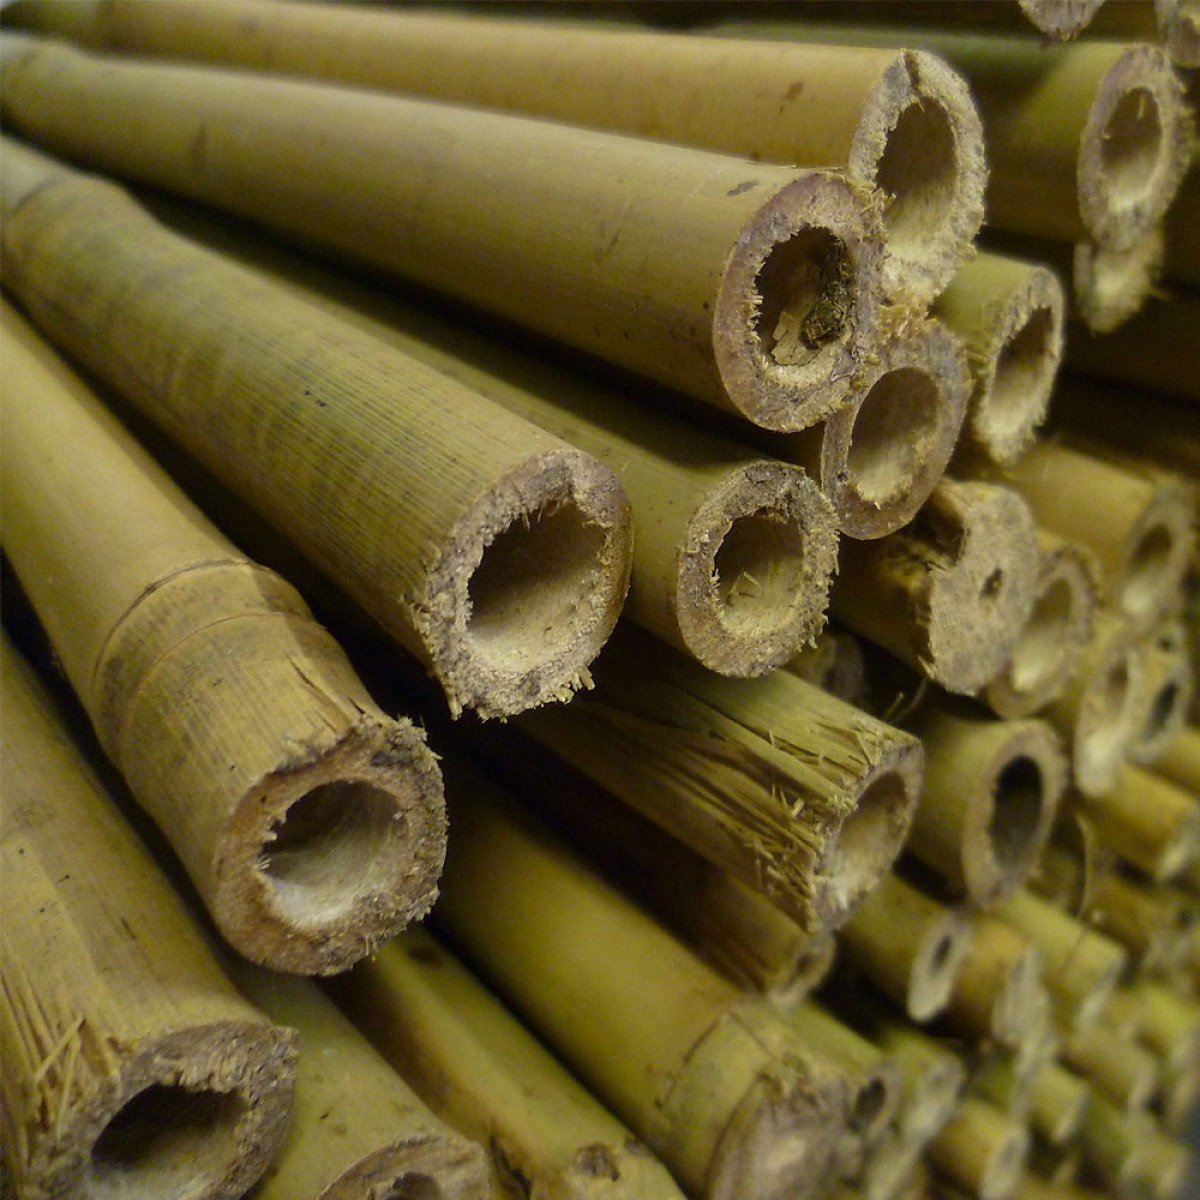 8ft Bamboo Canes 14-16mm - Pack of 50 (a308)